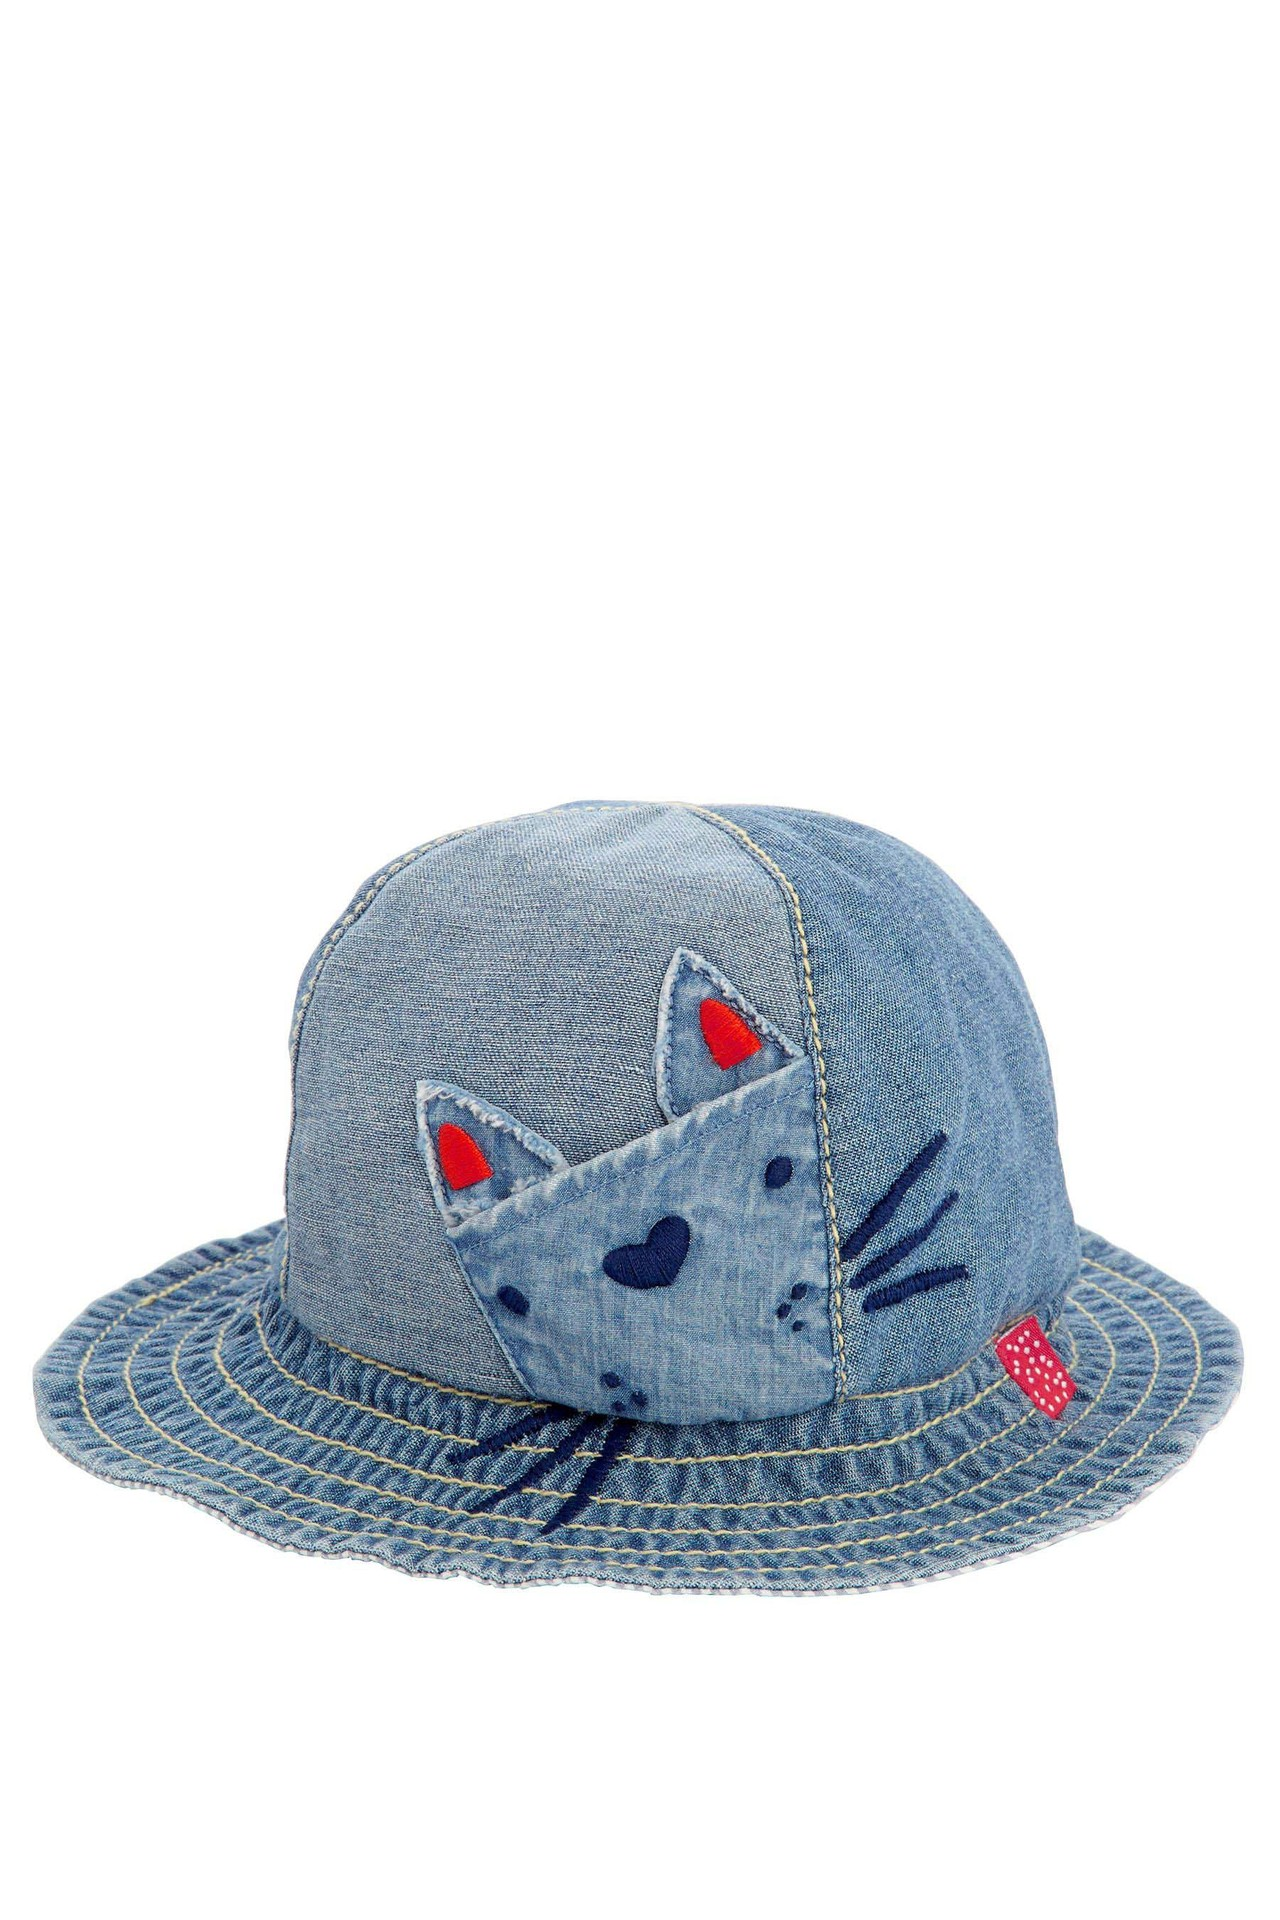 Protect your boys from the sun with one of our adorable sun hats. We offer a wide variety of boy's sun hats to choose from. Browse our selection today.